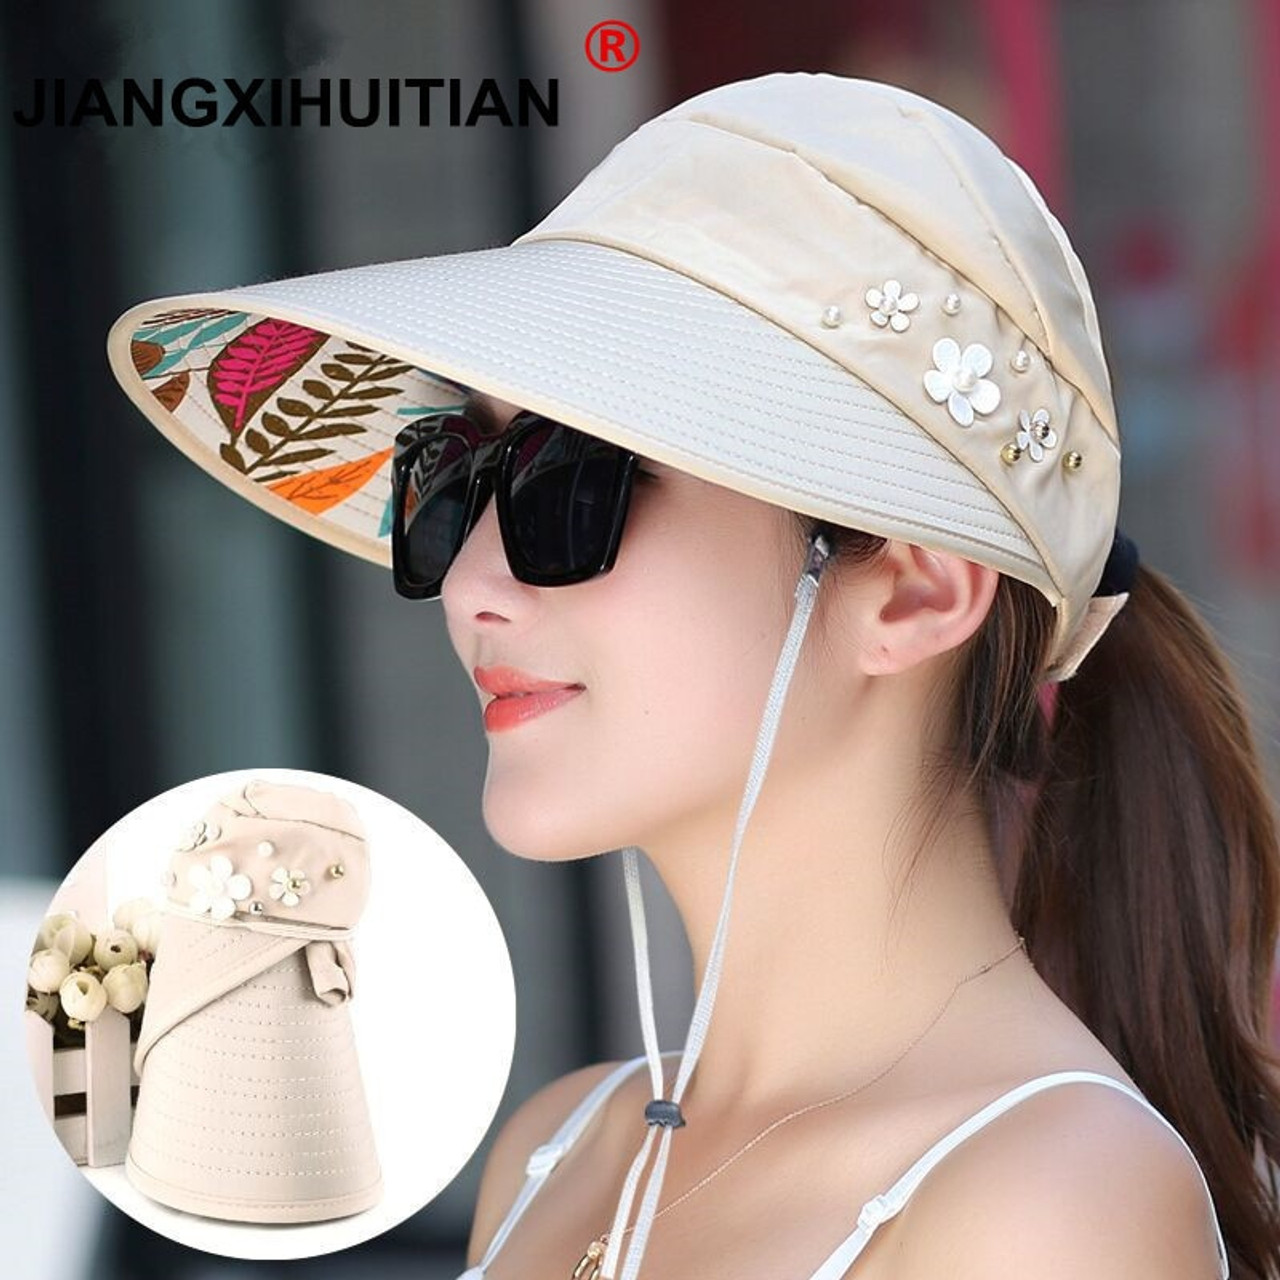 a4578133a 2018 Hot 1PCS women summer Sun Hats pearl packable sun visor hat with big  heads wide brim beach hat UV protection female cap